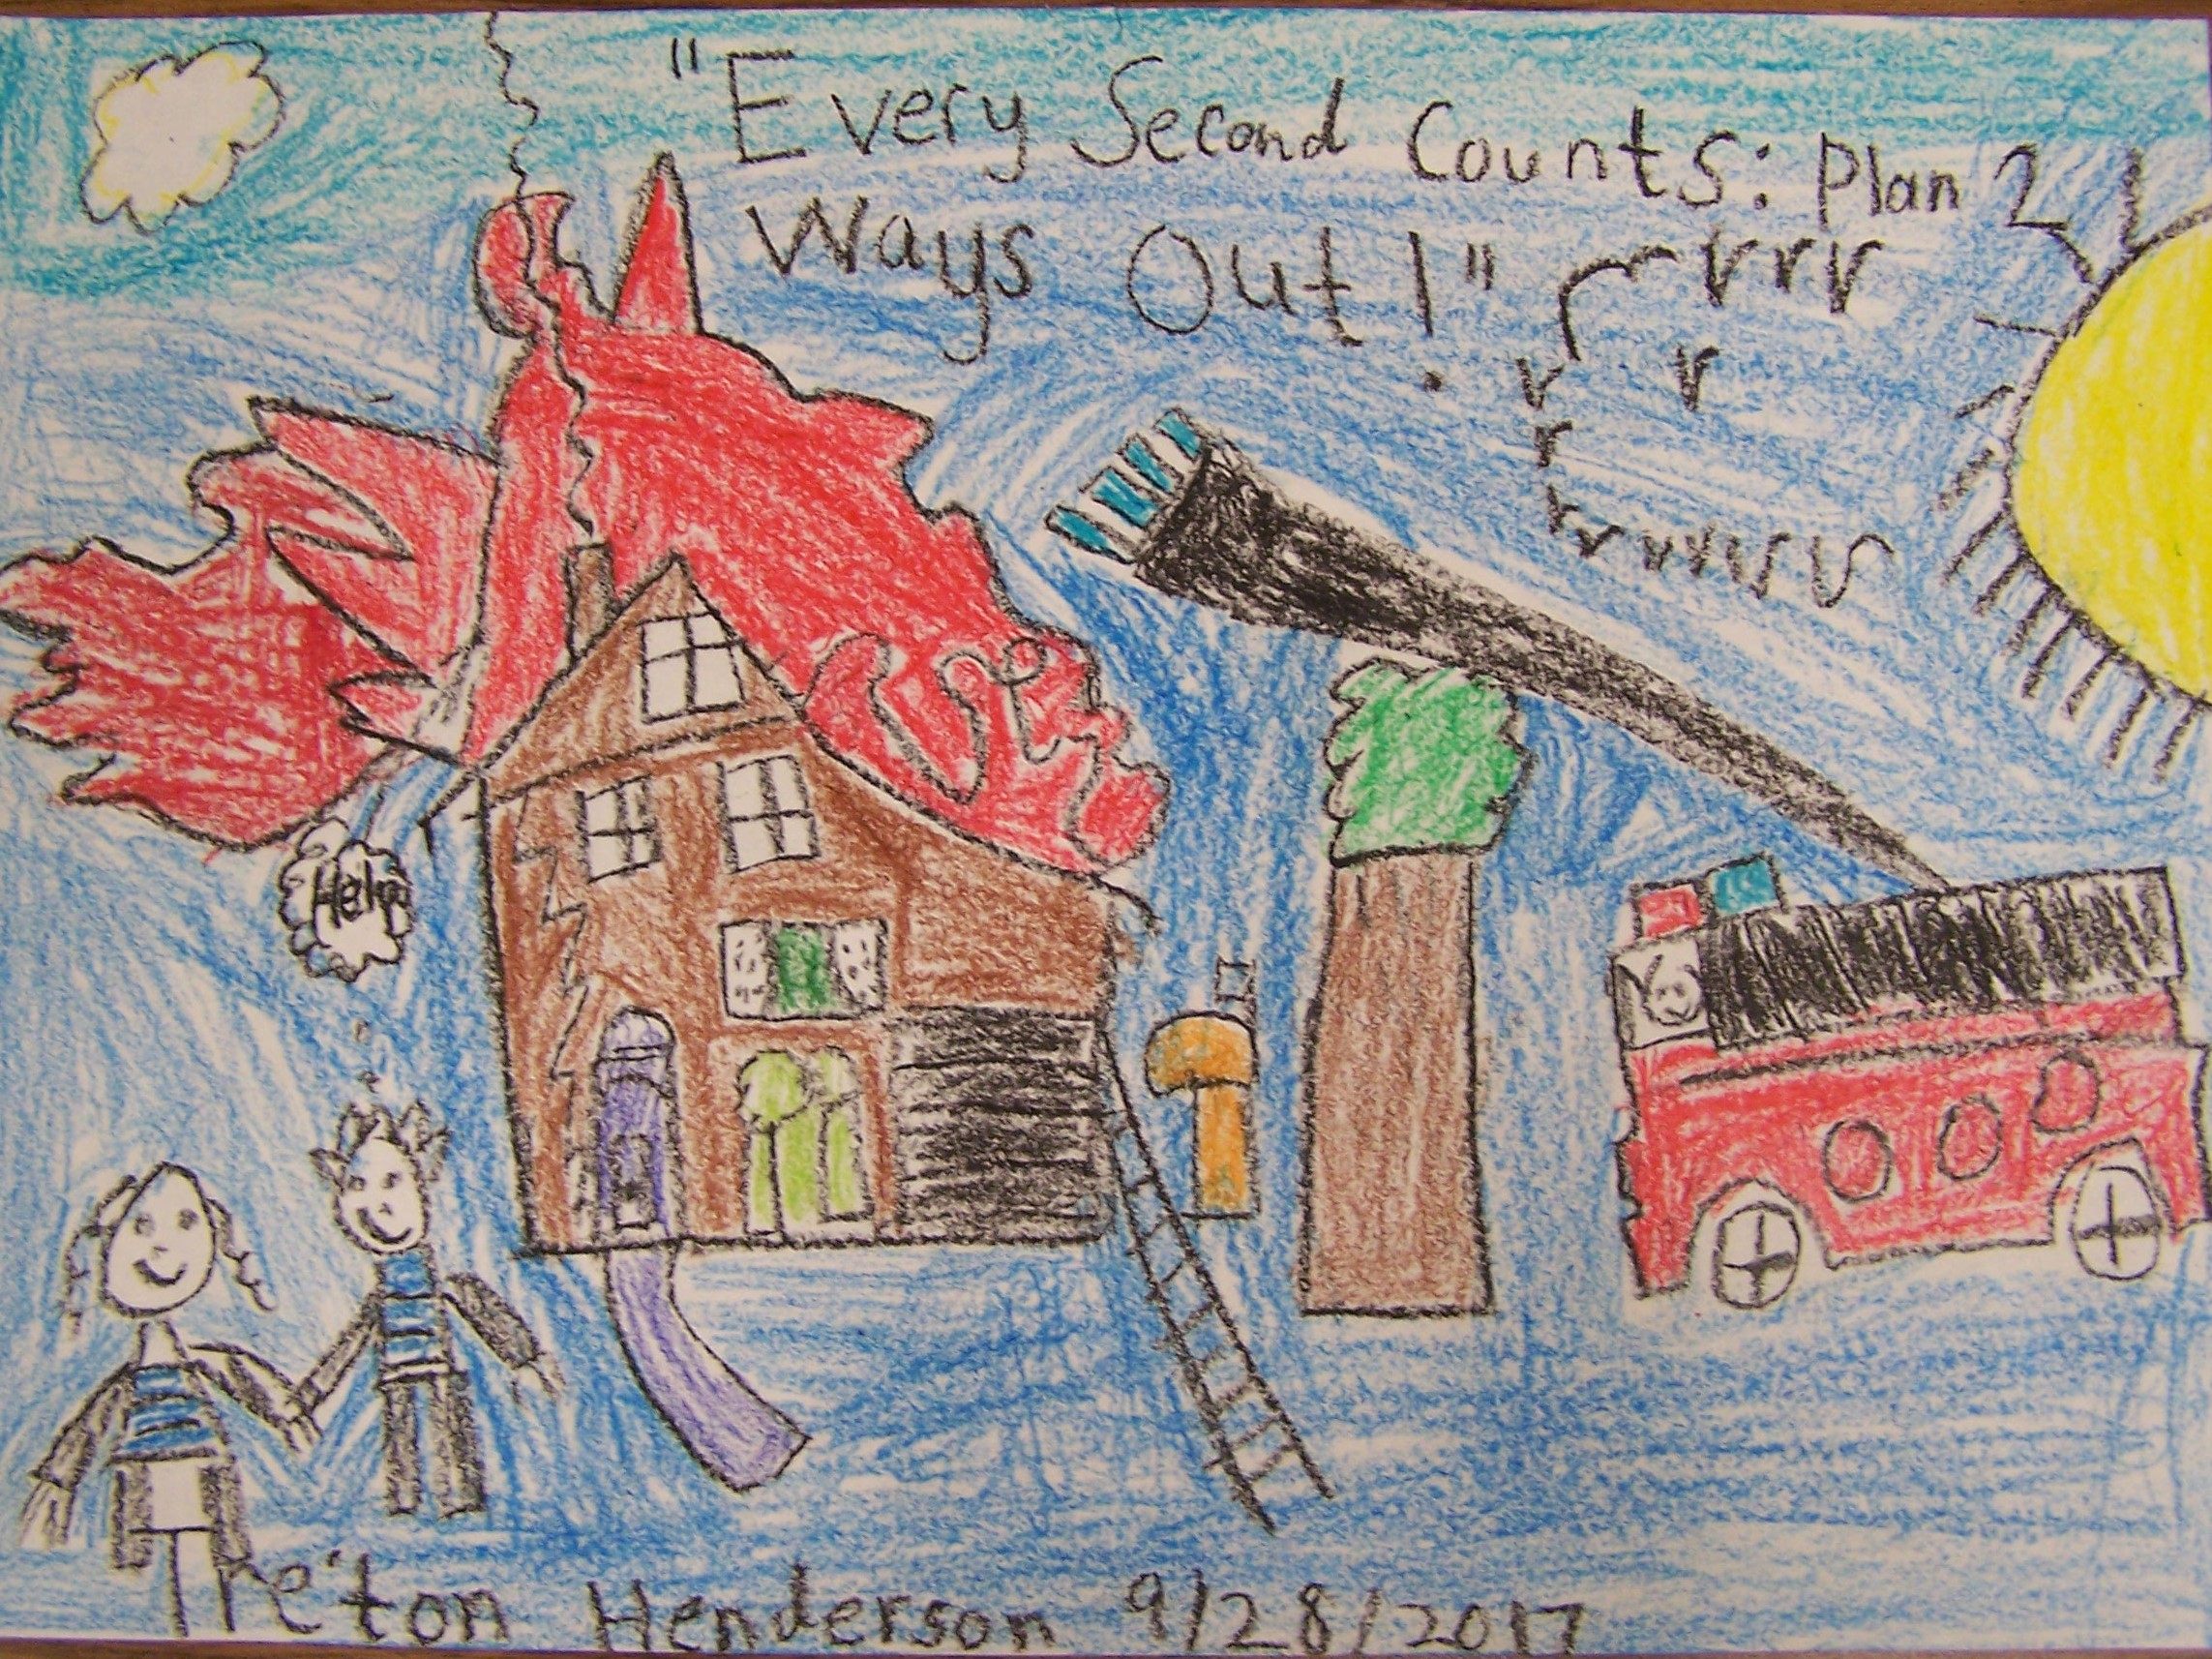 Fire Safety Poster Contest - 1st Place (Tre'ton Henderson)